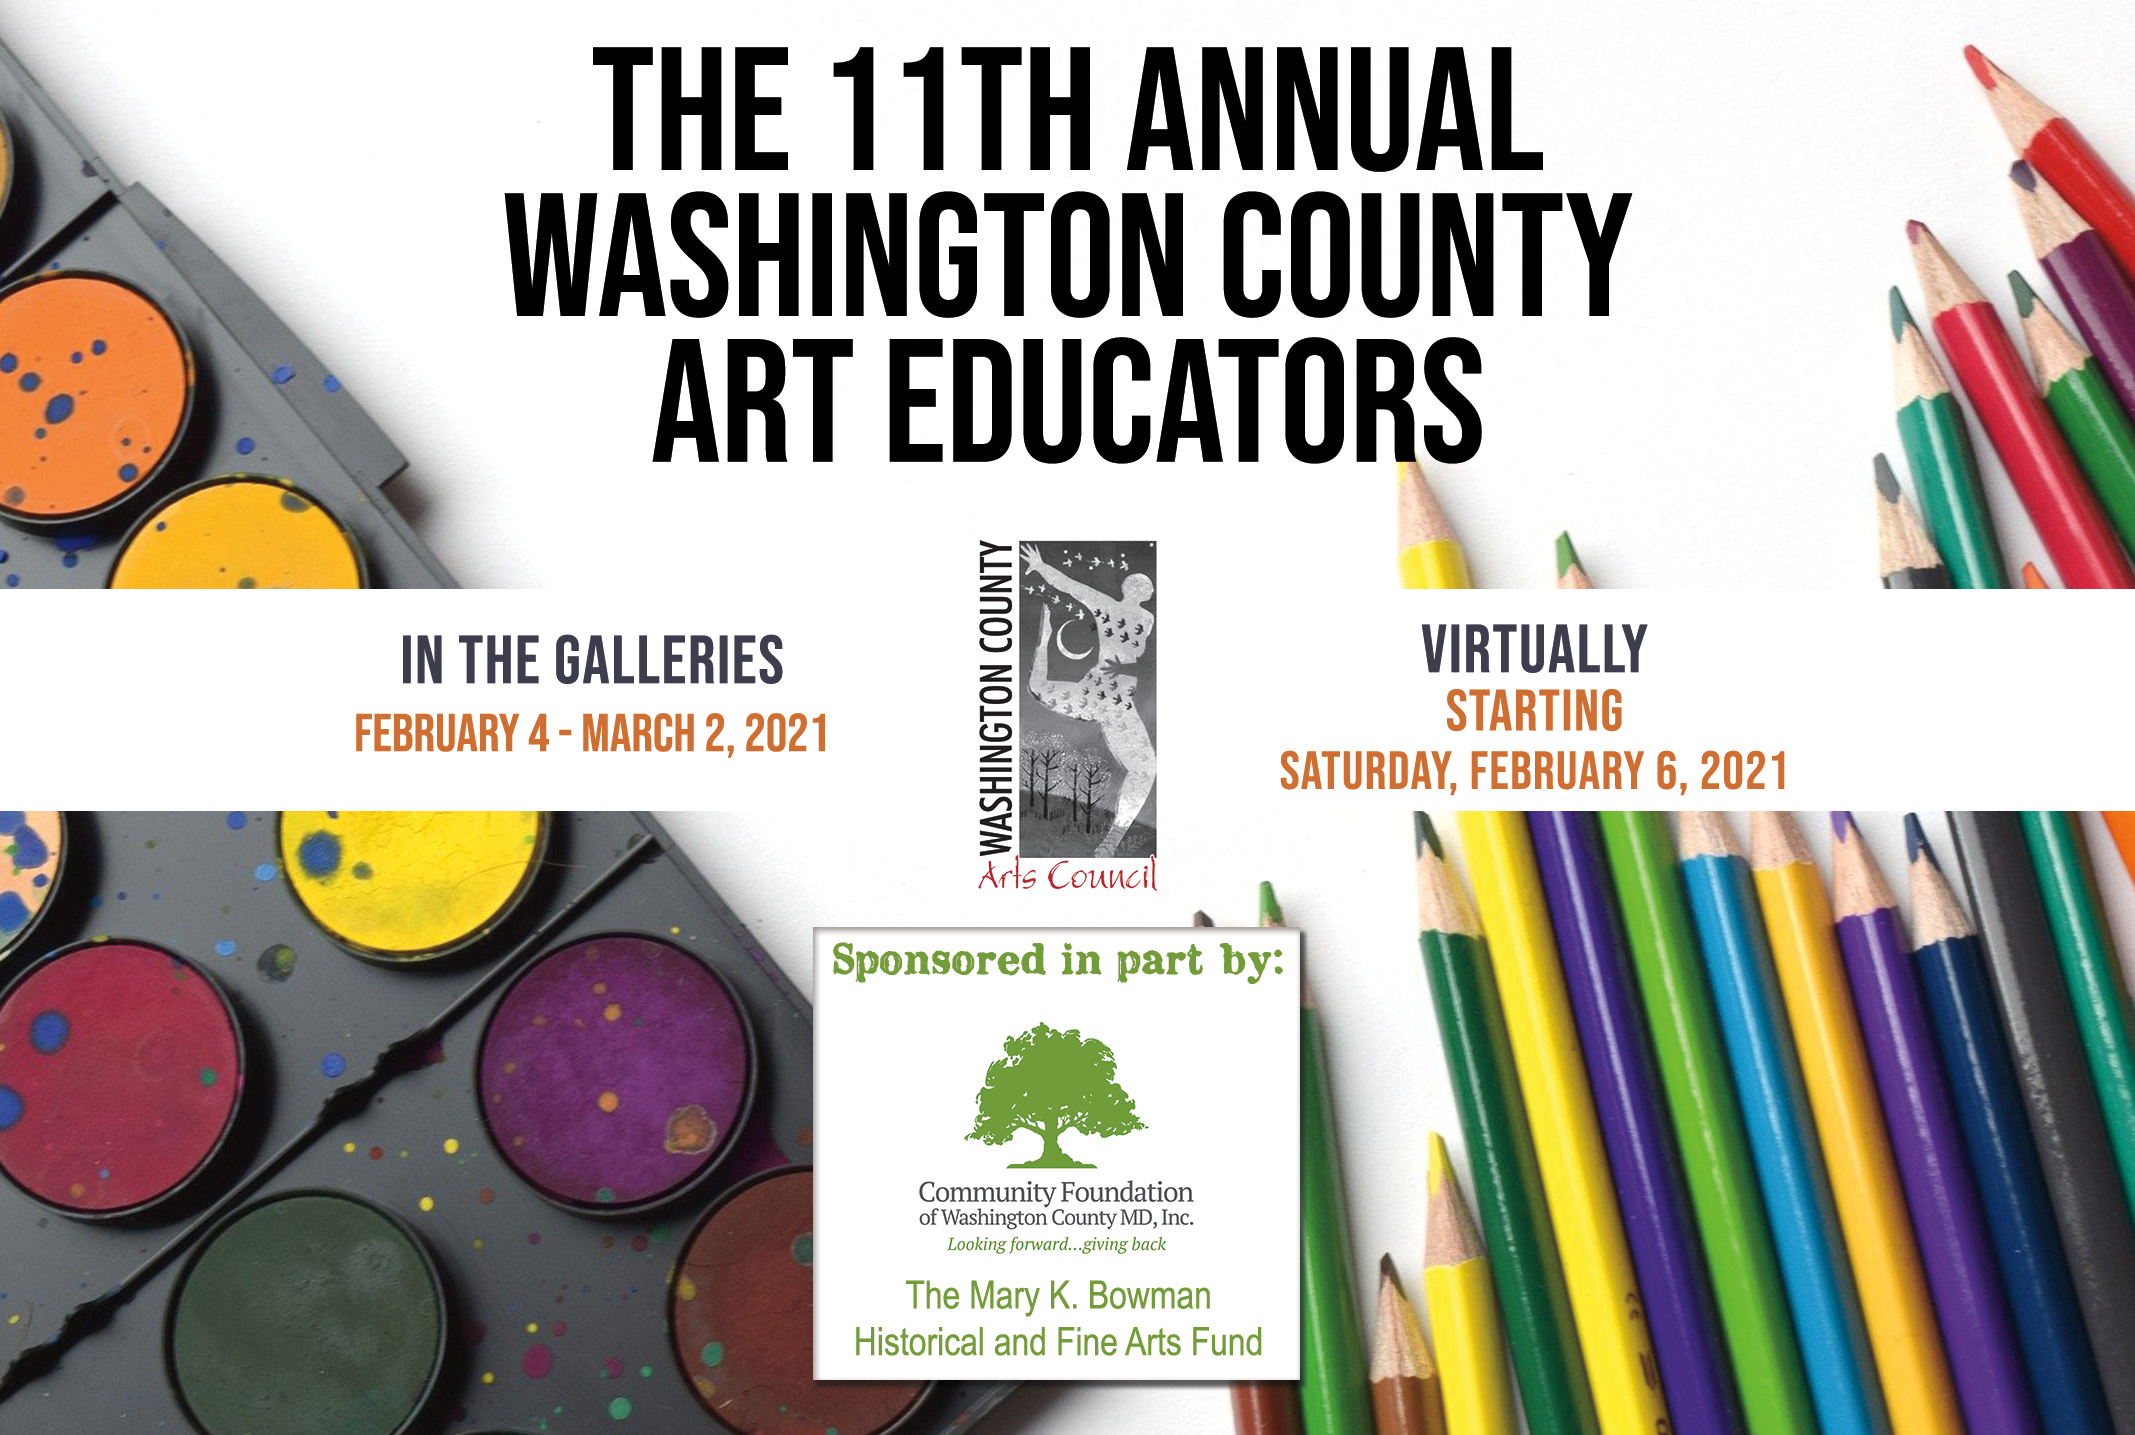 11th Annual Washington County Art Educators